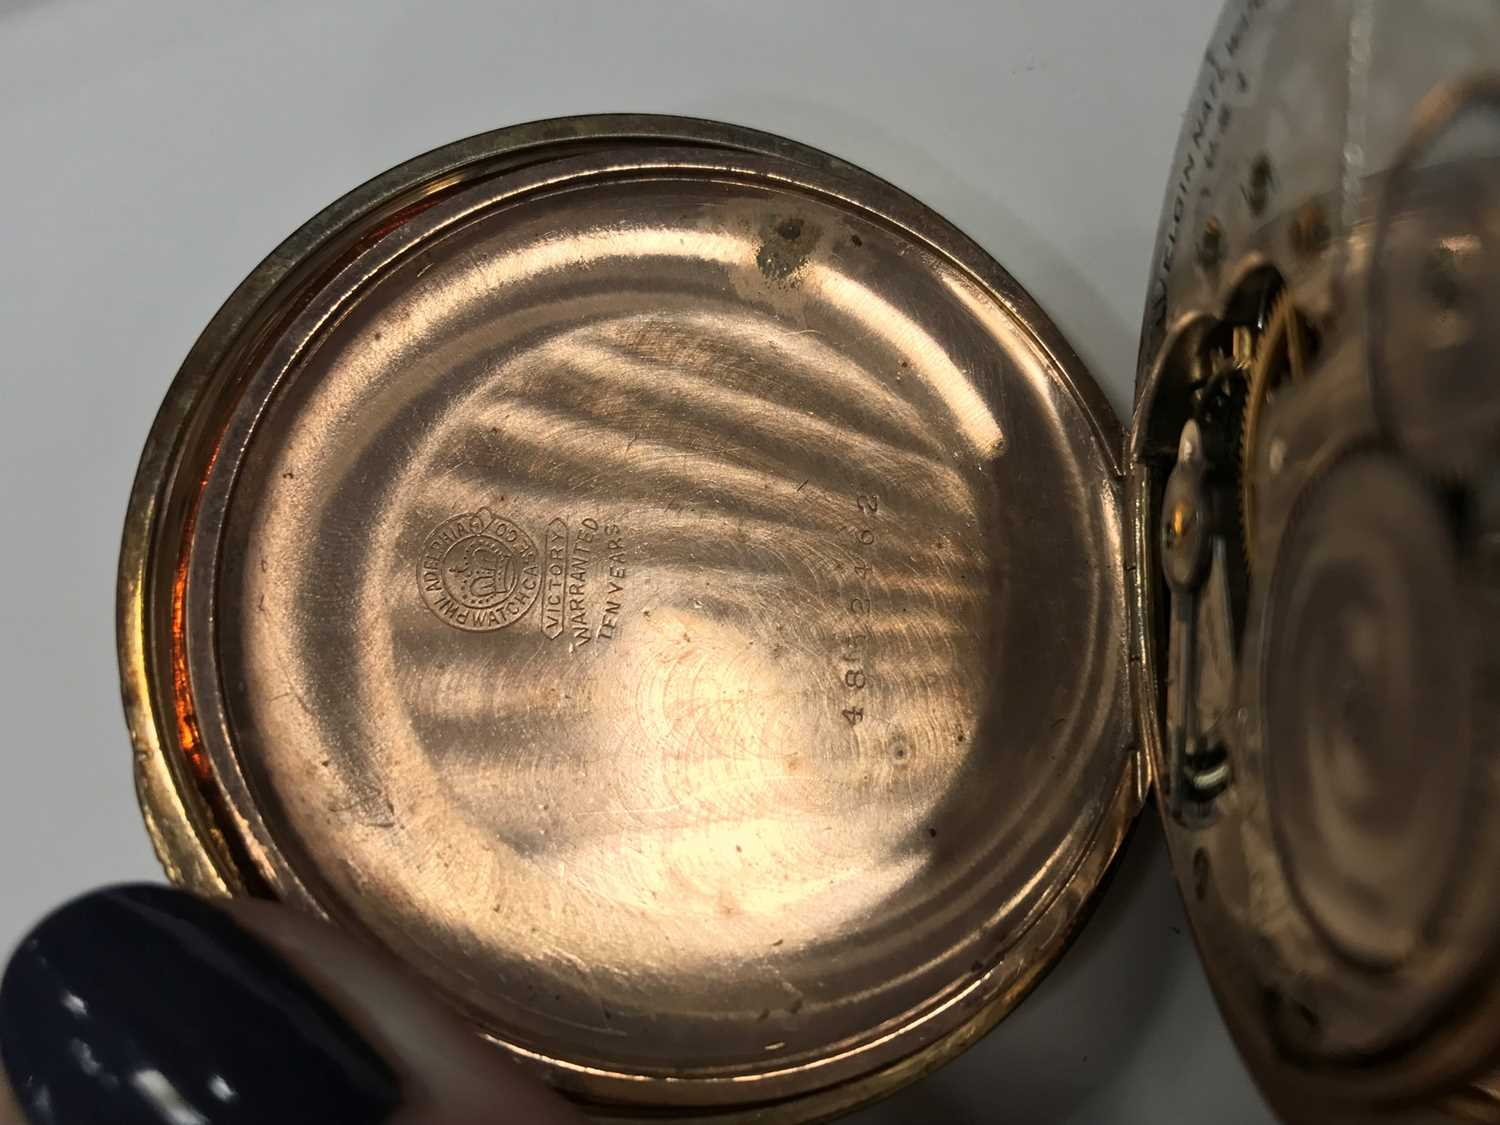 A GOLD PLATED ELGIN POCKET WATCH AND A GOLD WATCH CHAIN - Image 6 of 6